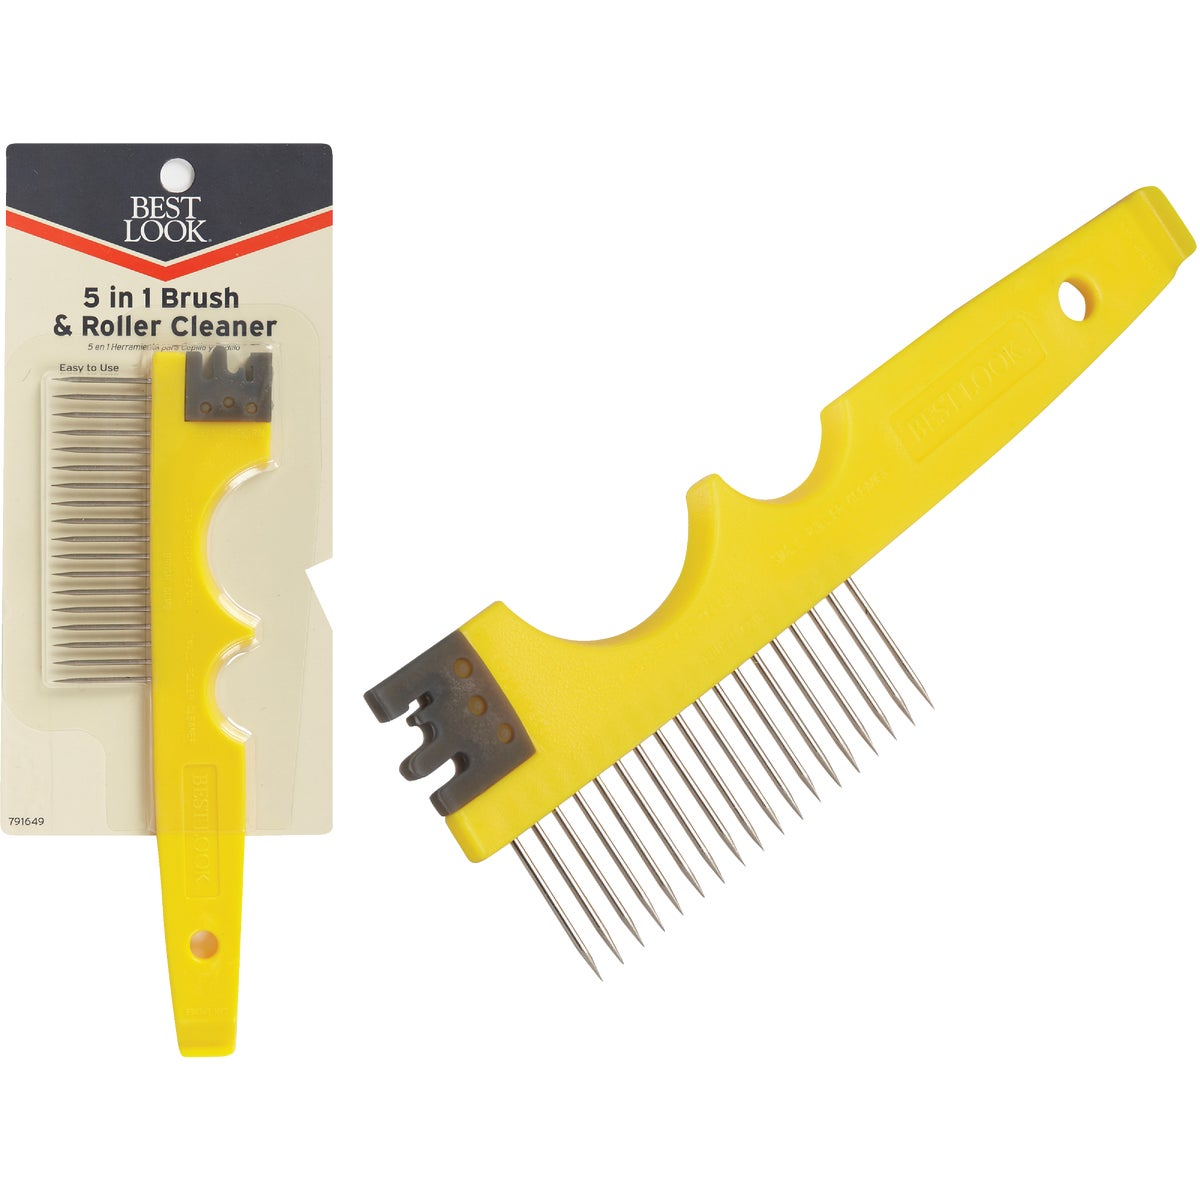 BRUSH & ROLLER CLEANER - 10591 by Warner Mfg Co